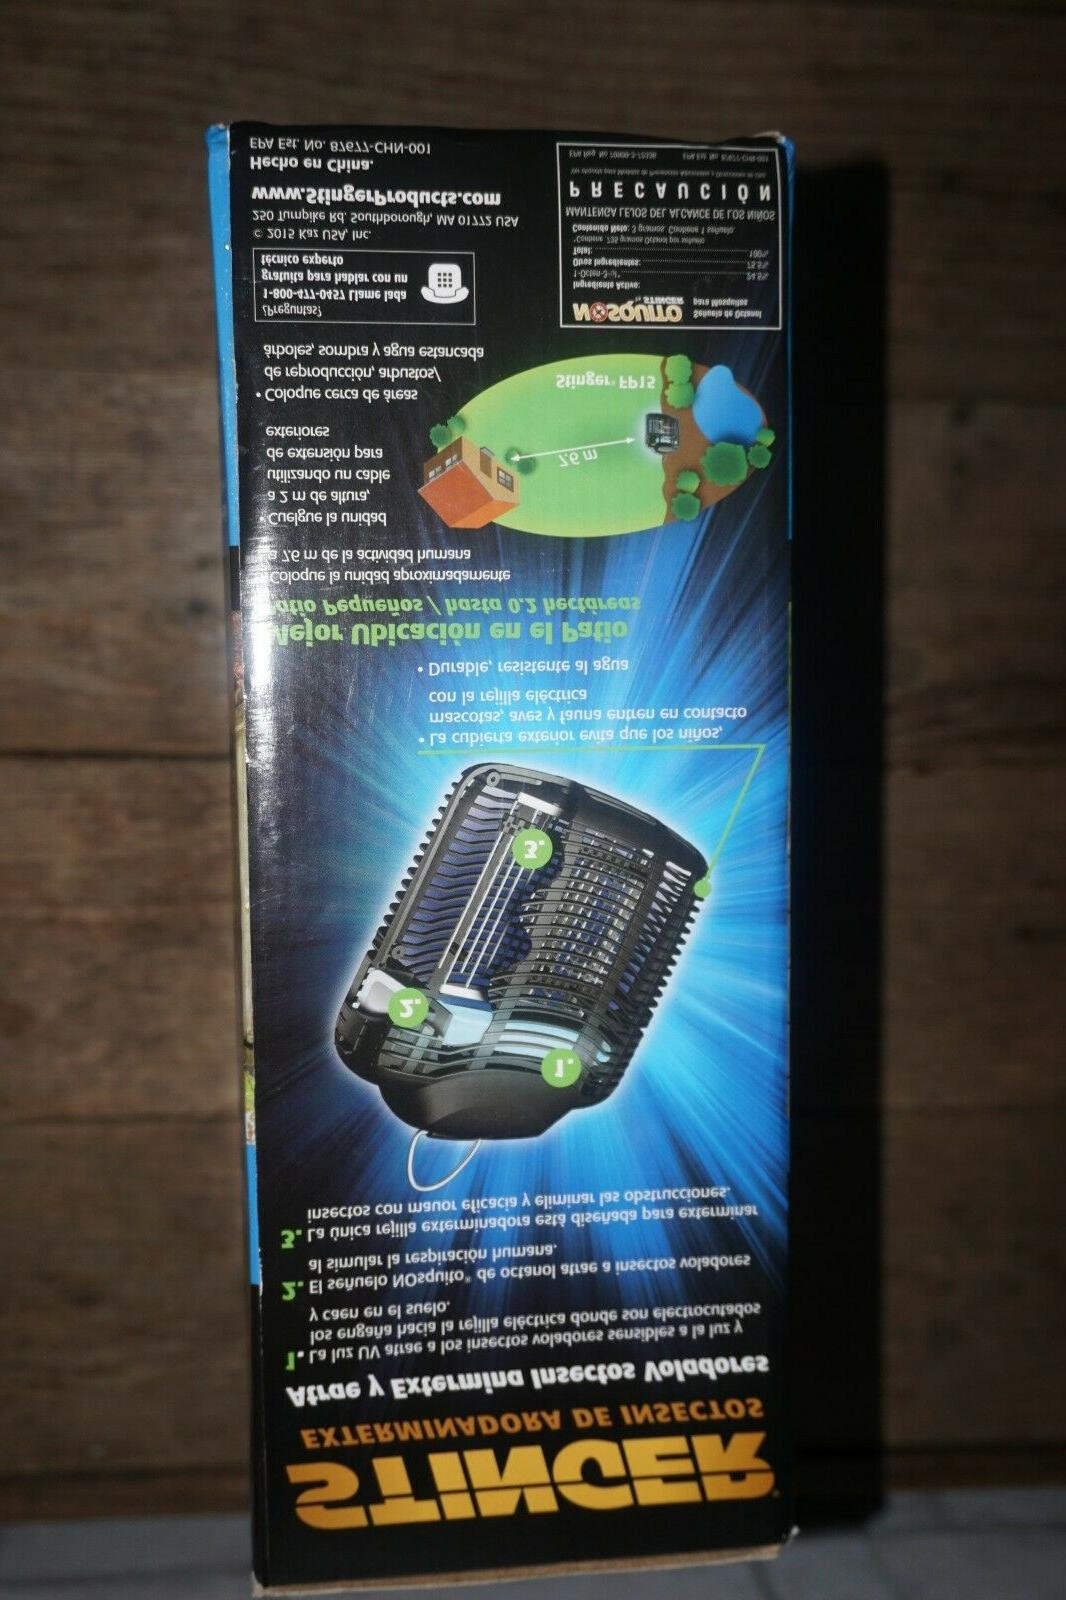 Stinger Electronic Insect Bug Zapper Coverage